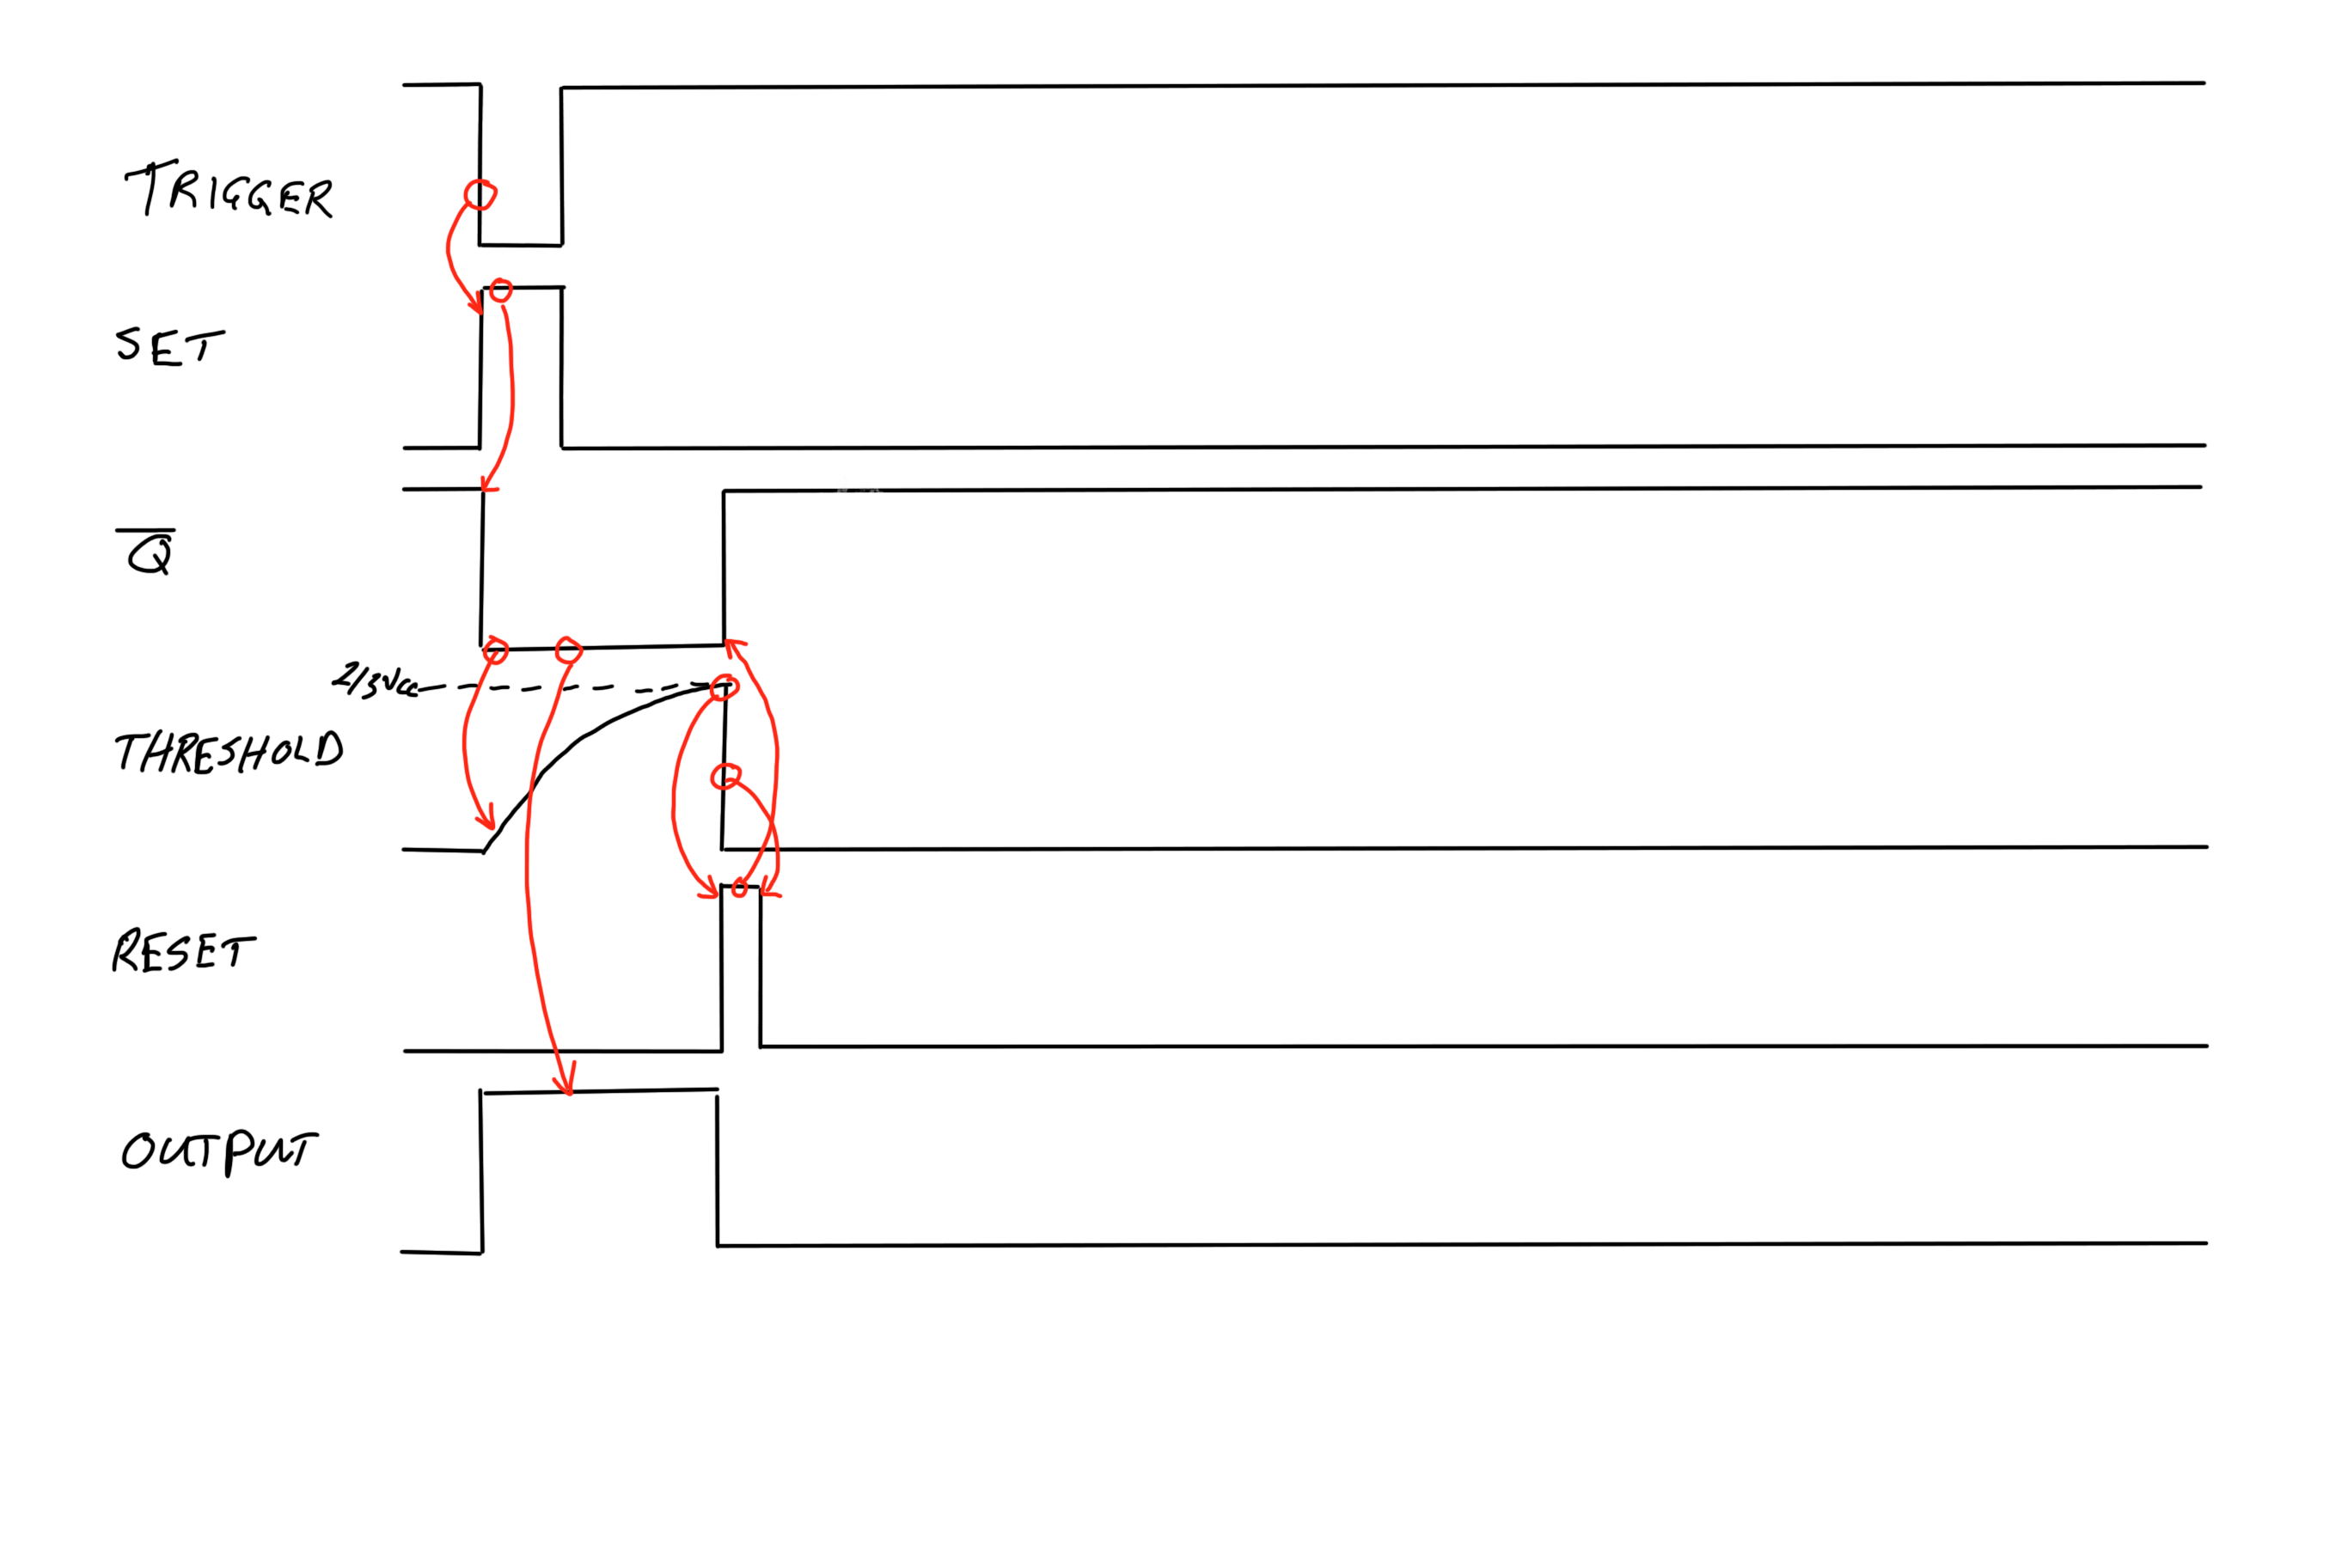 components_monostable_timing.png